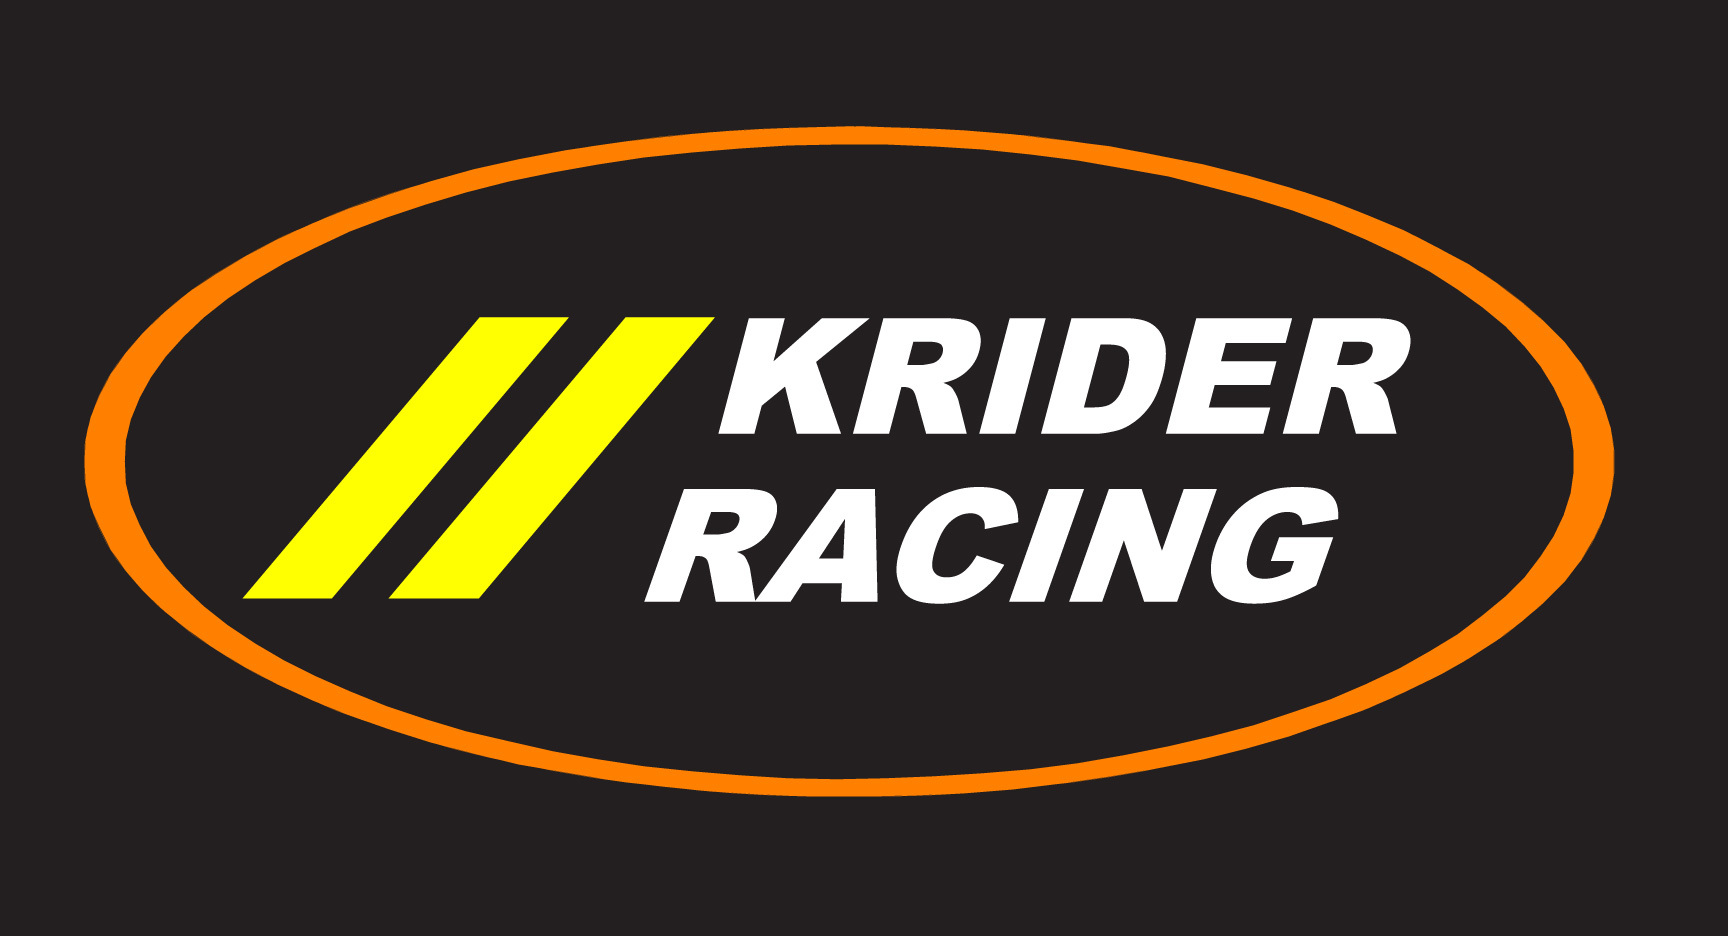 KriderRacing38 2008 Ford Mustang 13000957